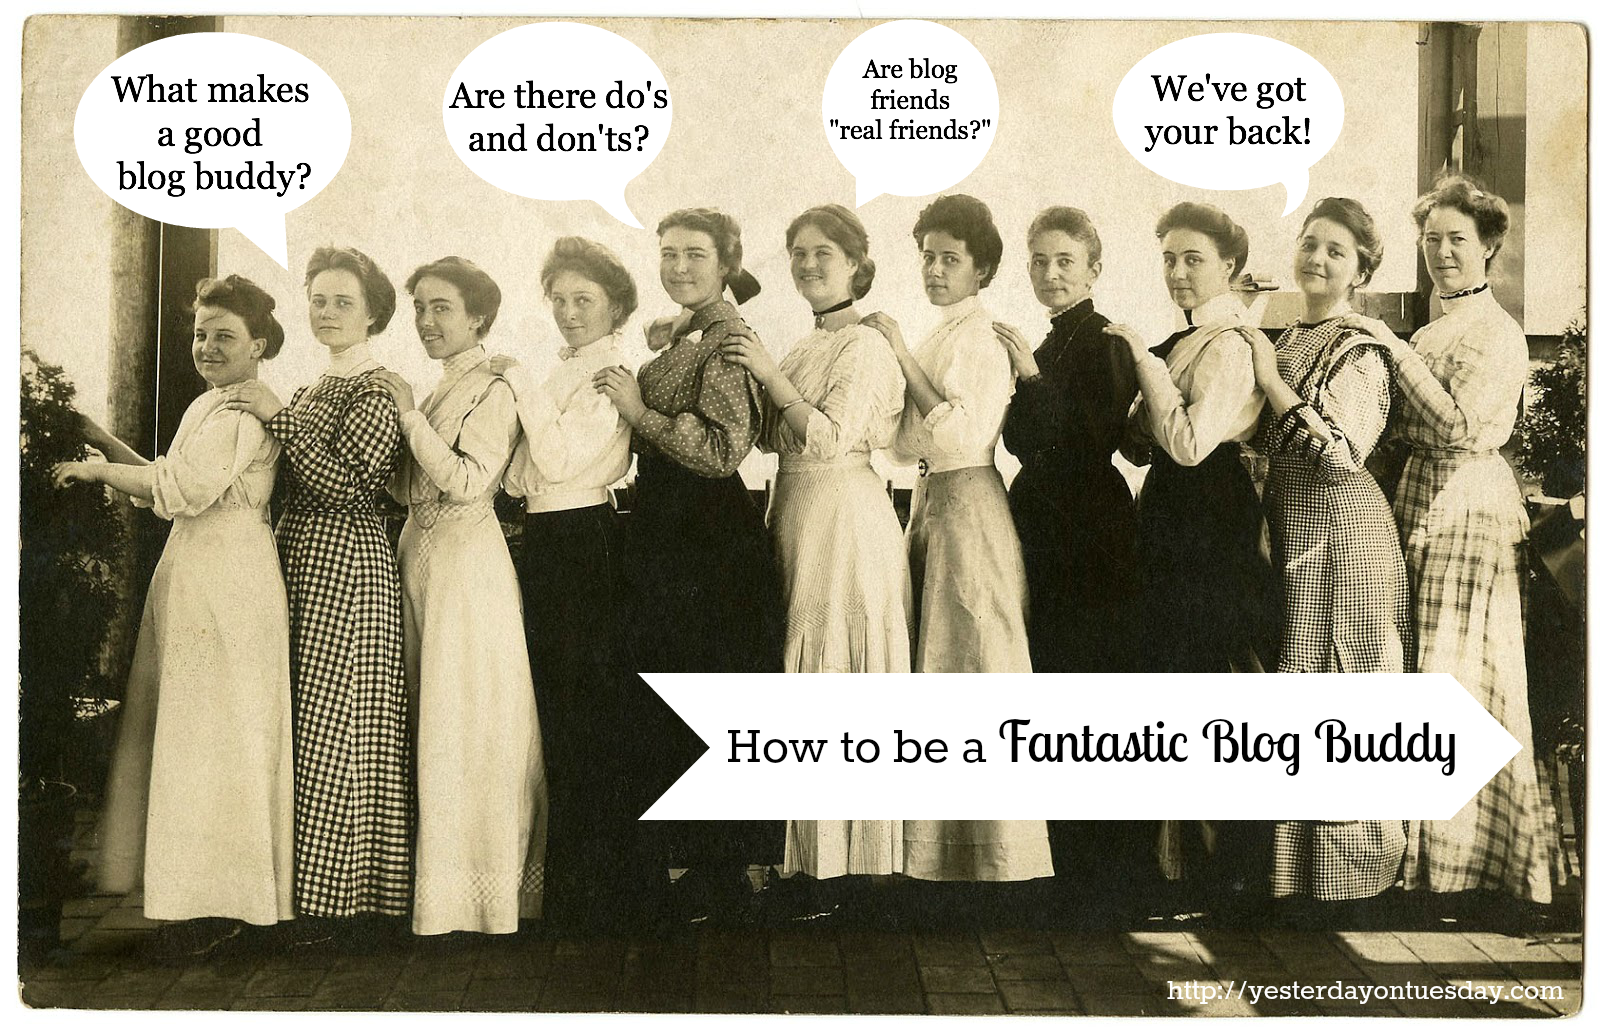 How to be a Fantastic Blog Buddy